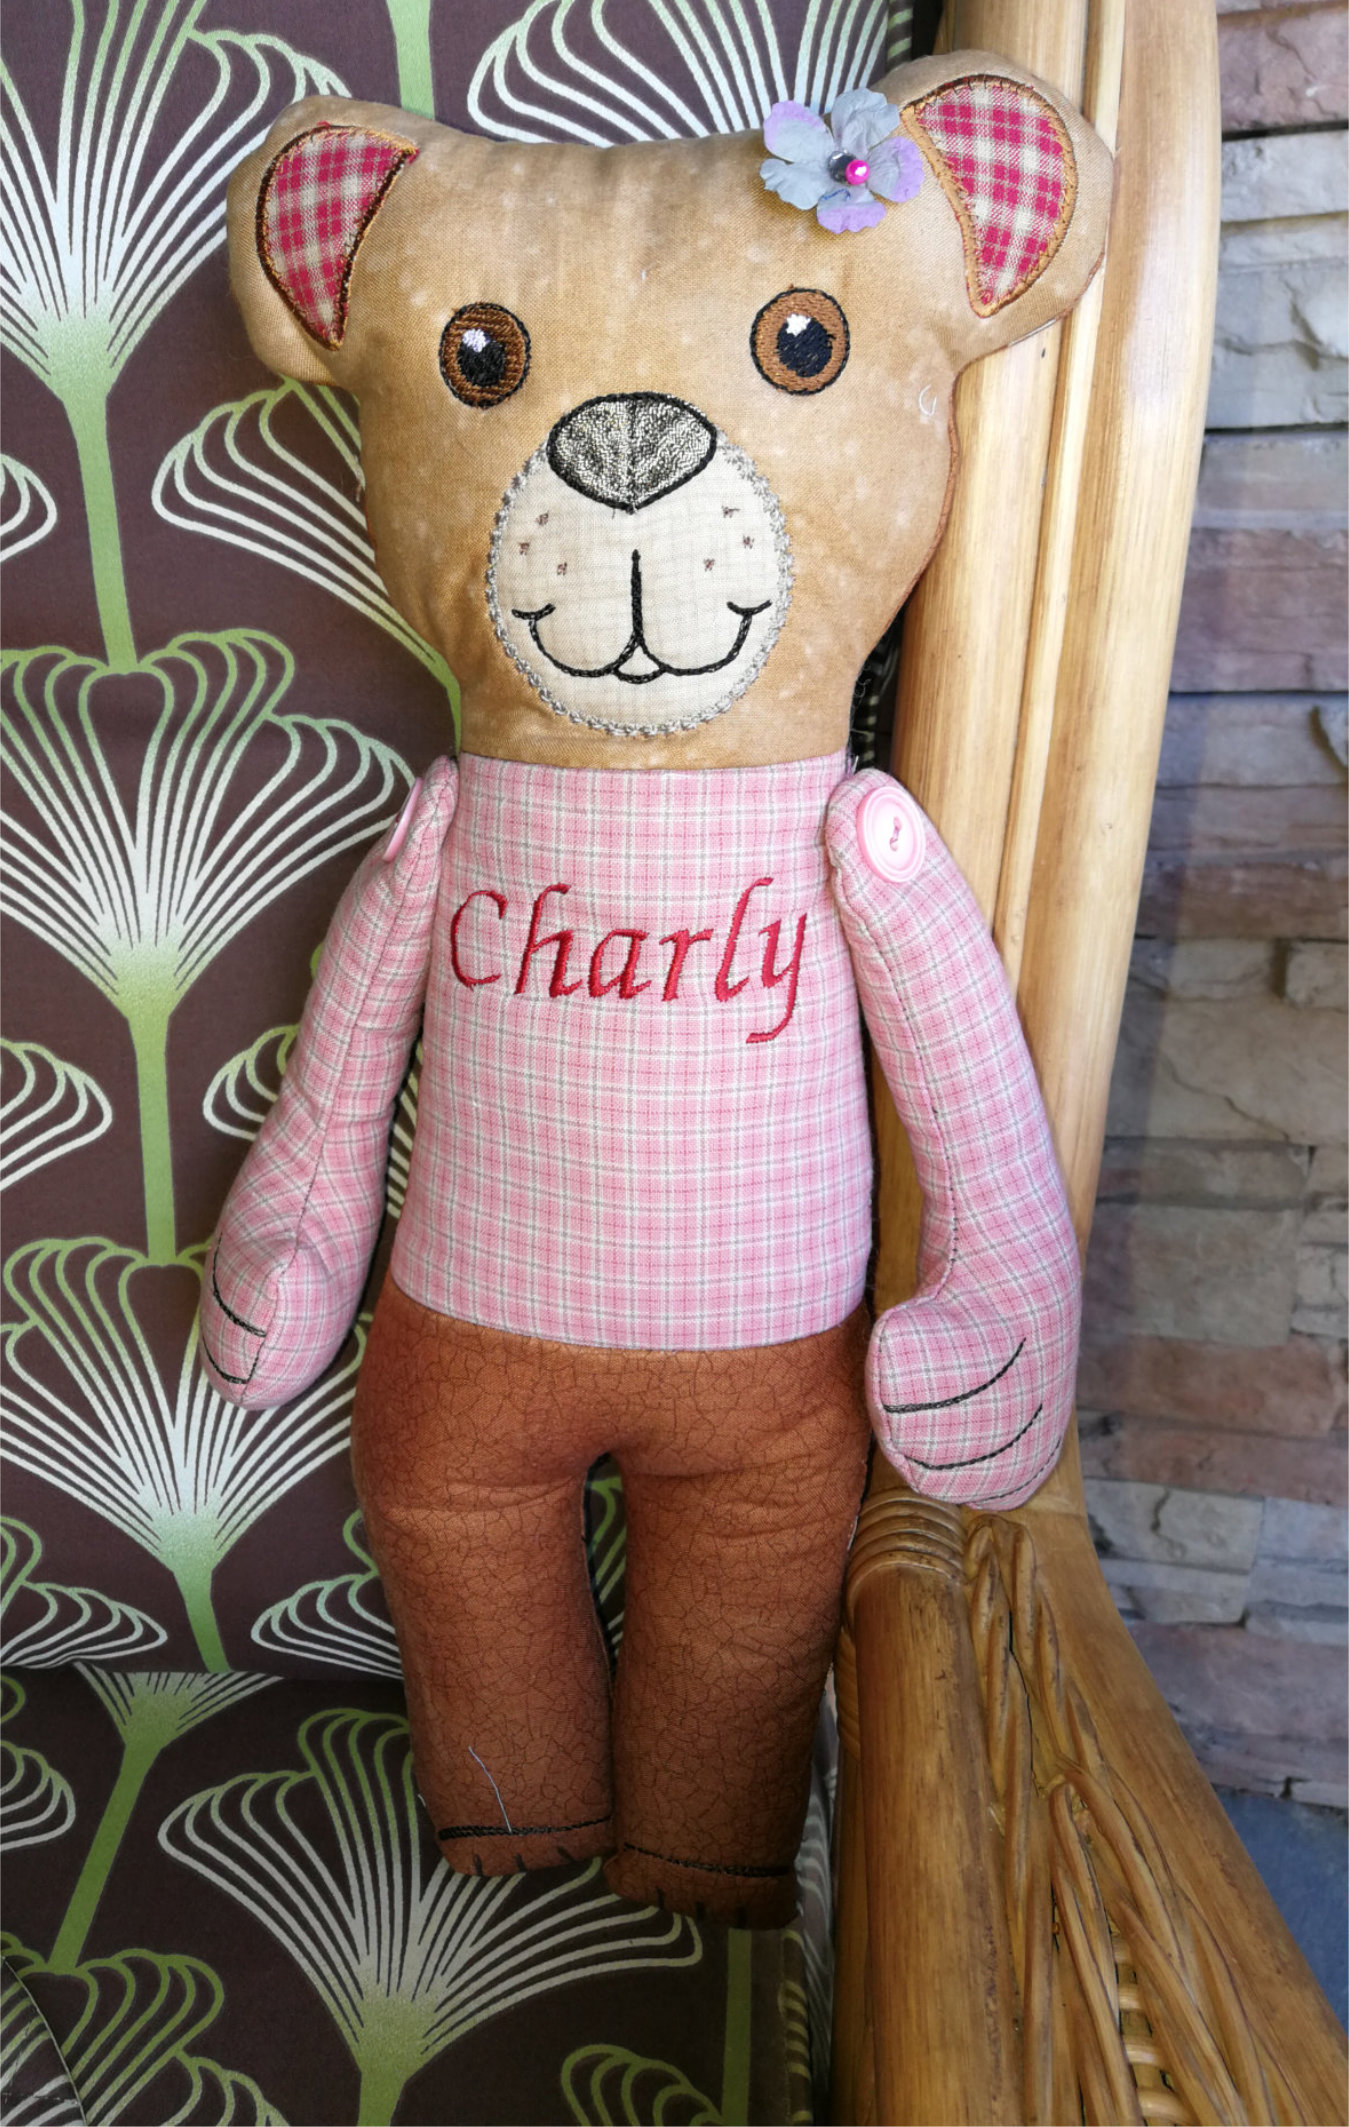 Charly The Cute Teddy-4